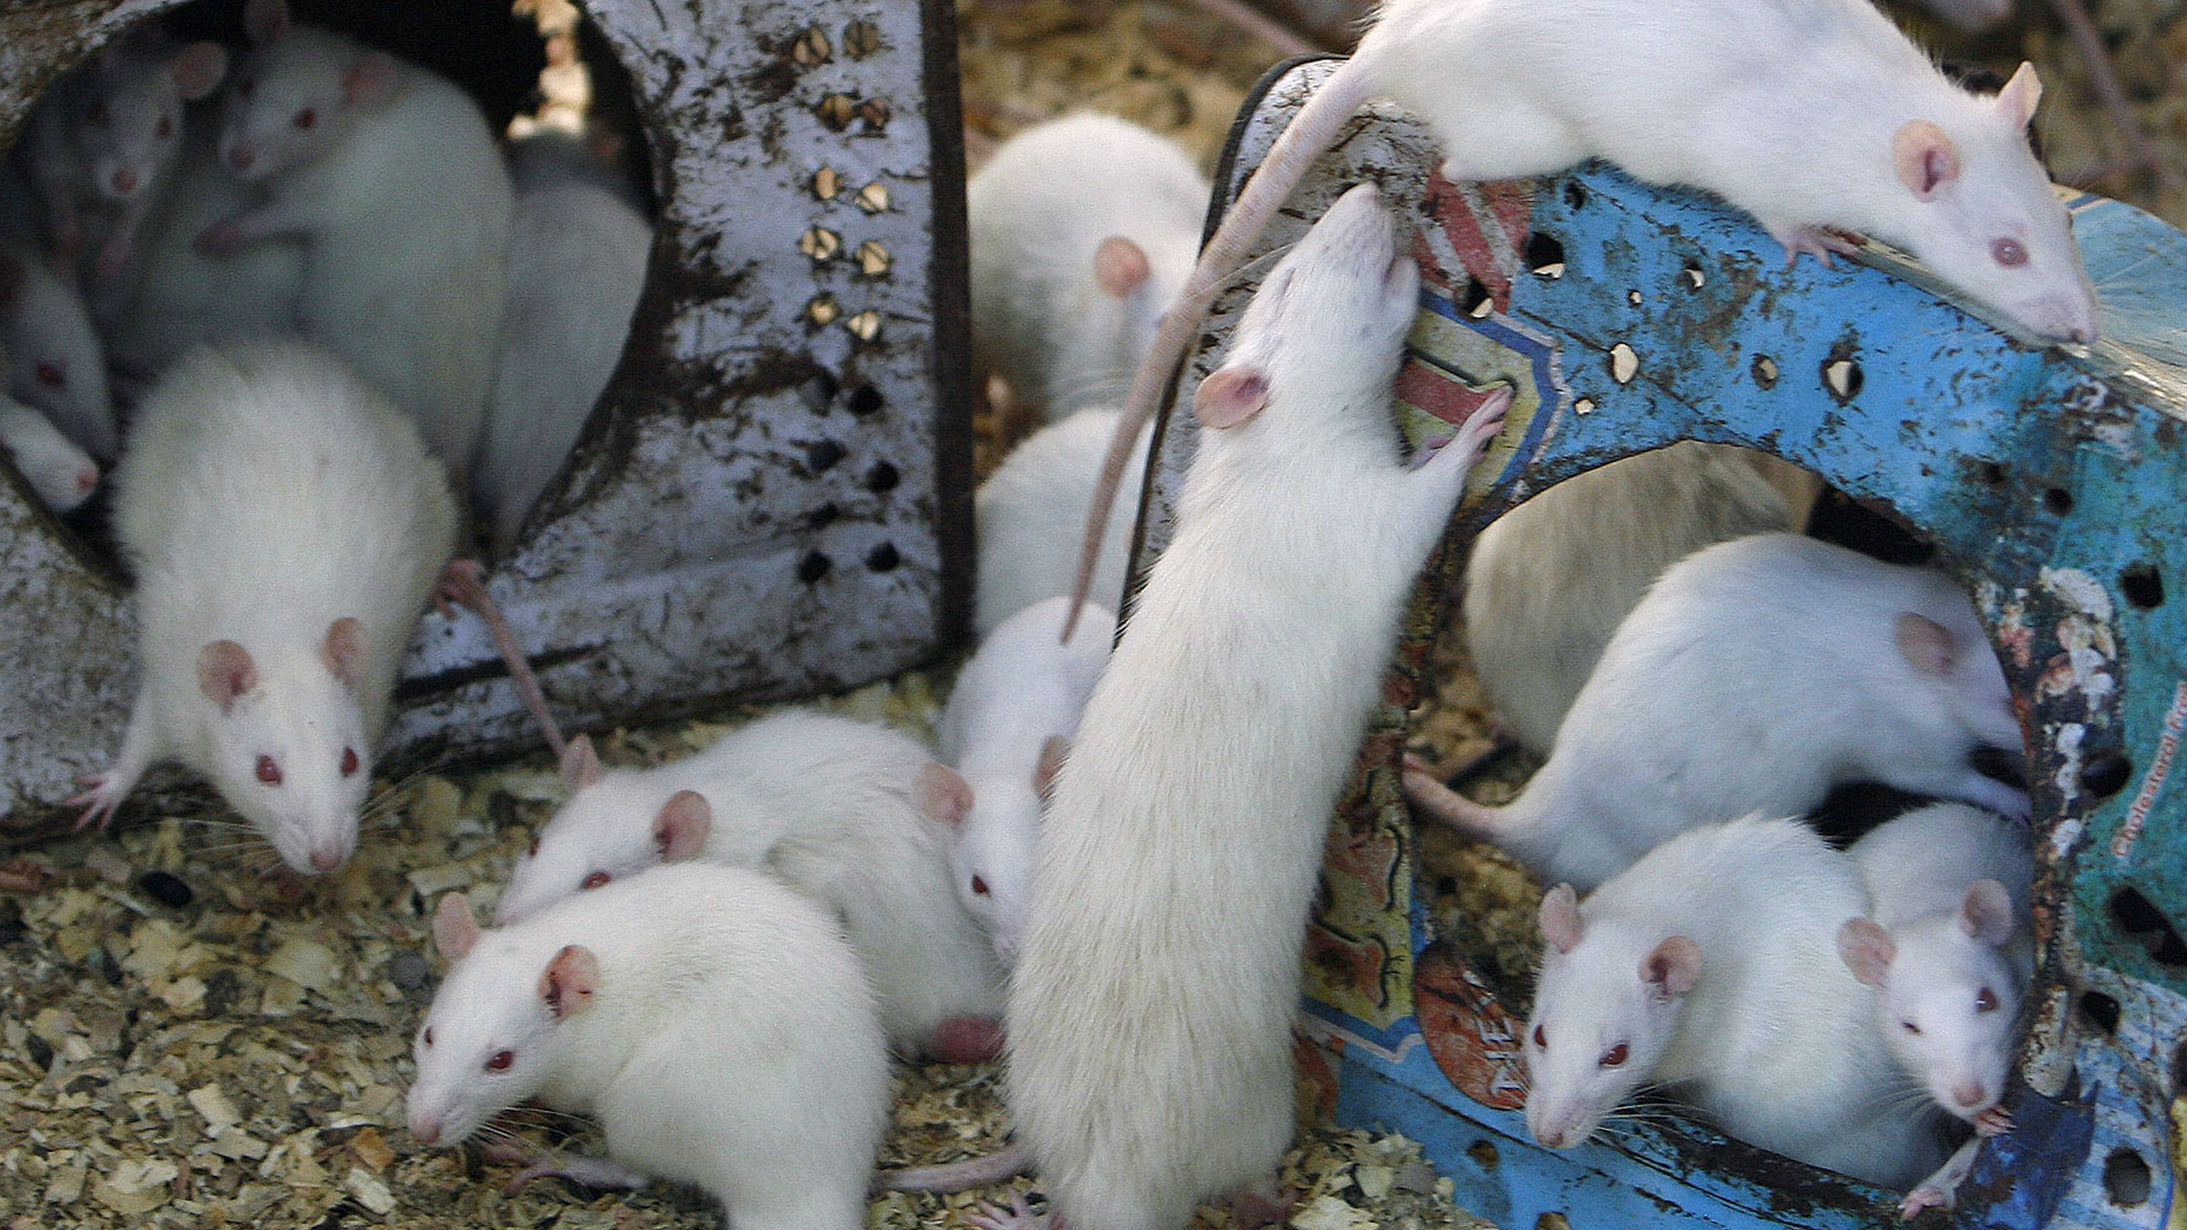 New York City mice carry drug-resistant bacteria, study finds